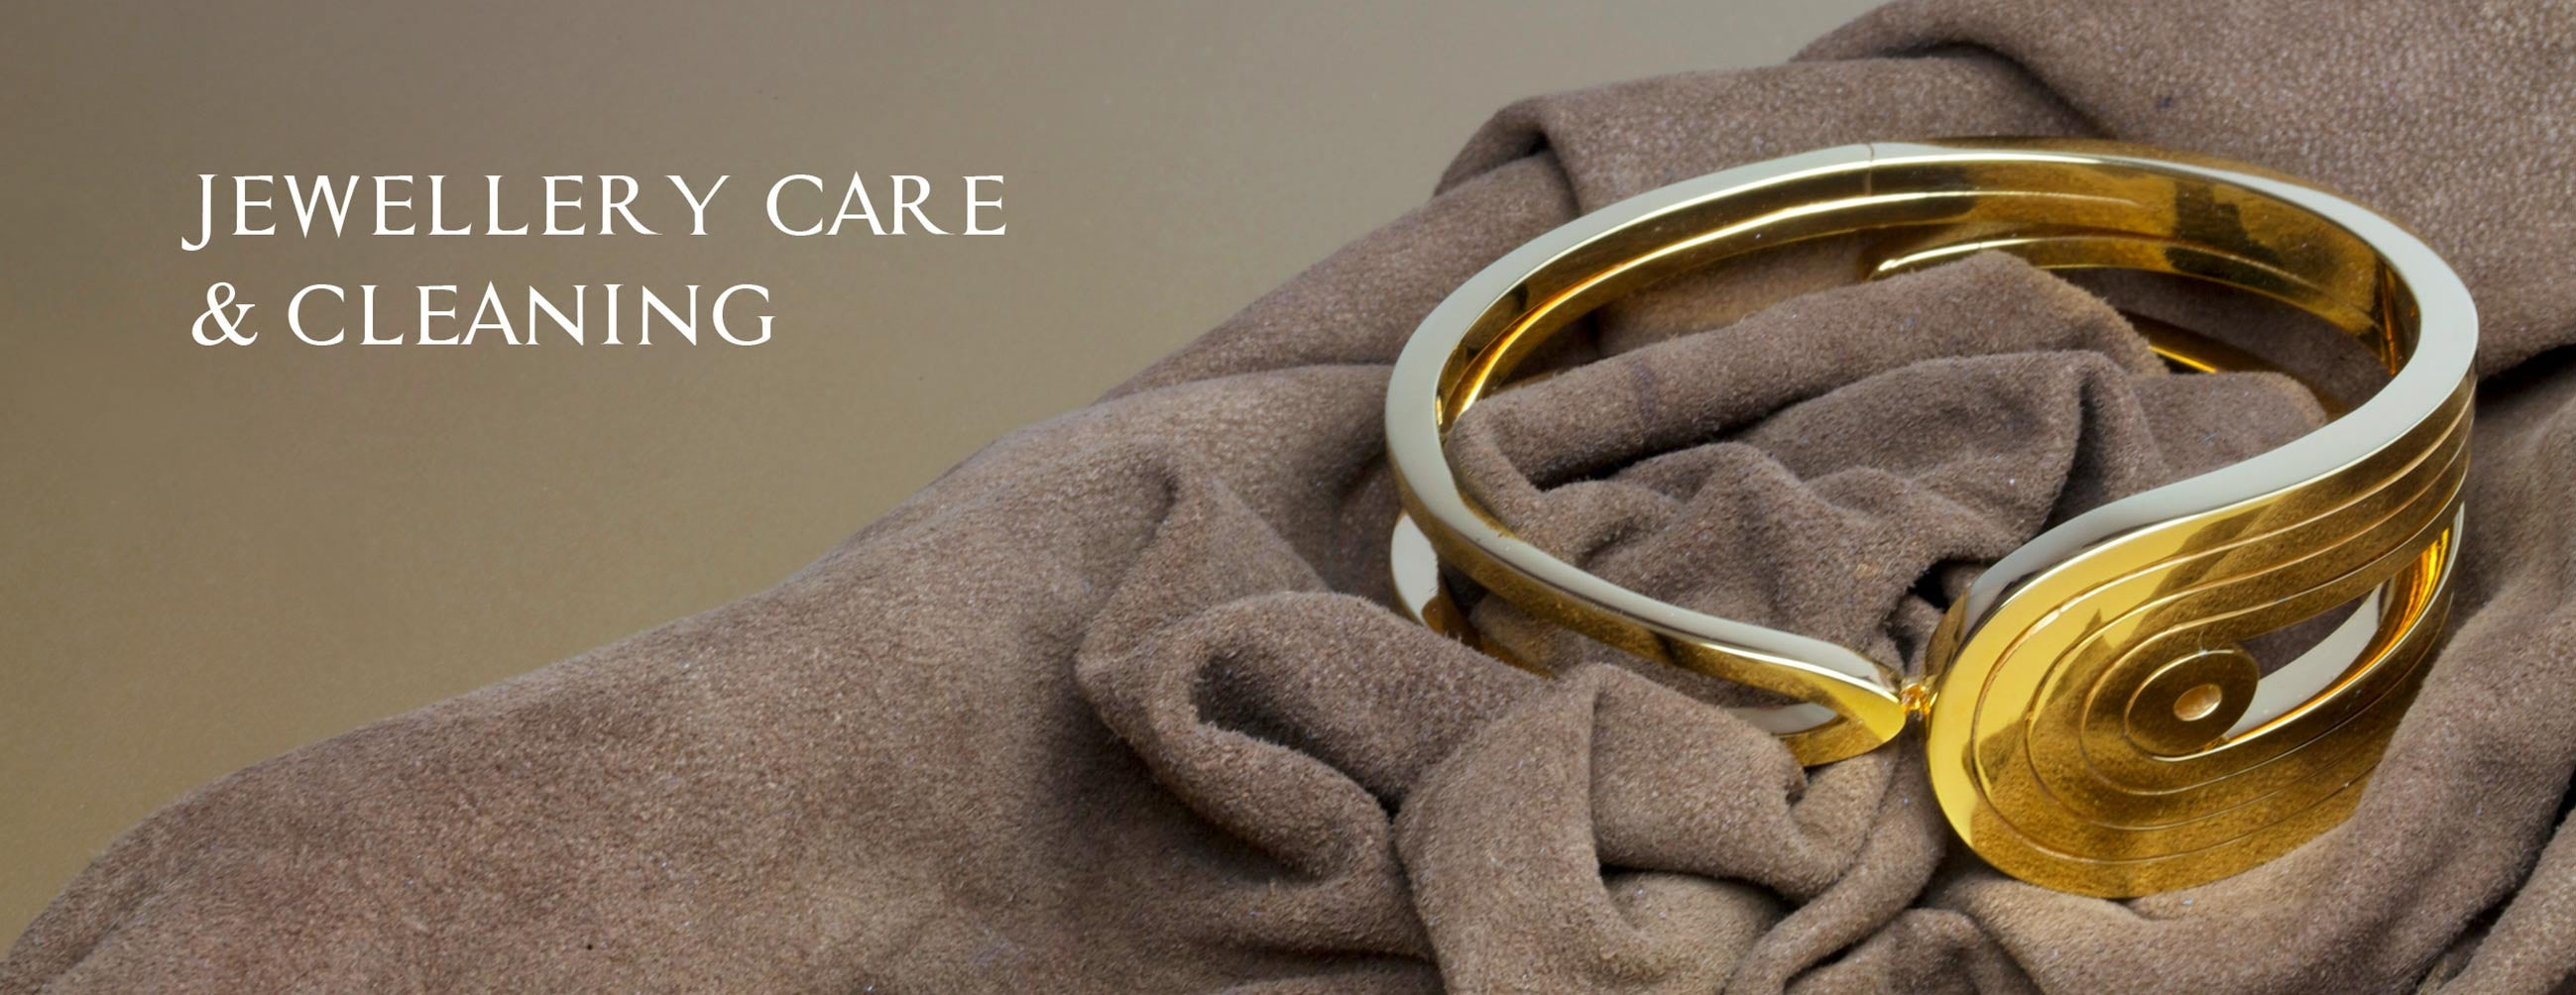 Jewellery care and cleaning amanda mansell jewellery care and cleaning solutioingenieria Choice Image